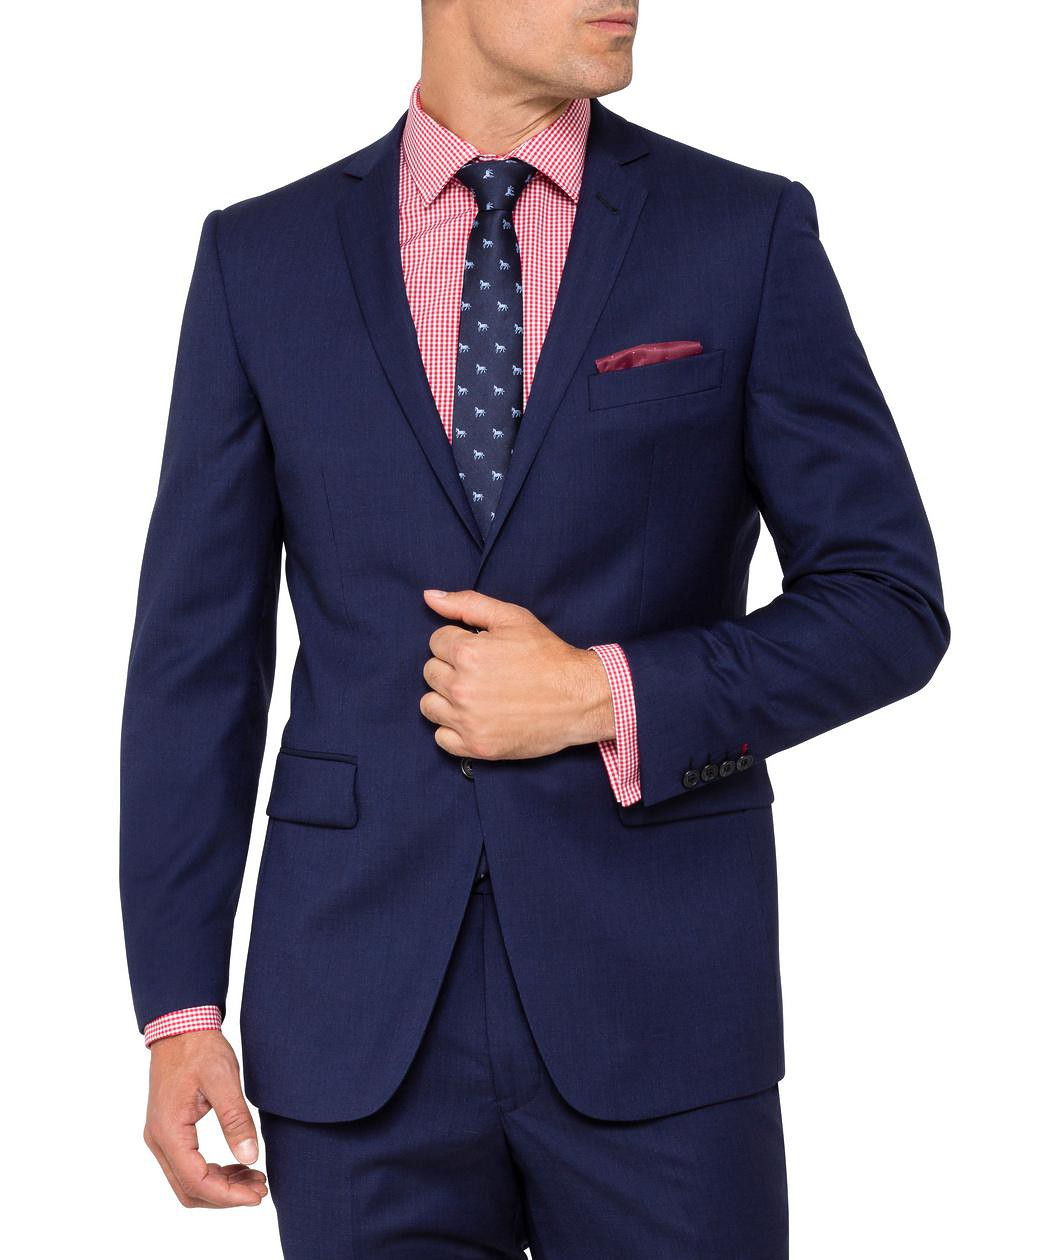 64272b155 Van Heusen Mens Move Slim Jacket Ink | Suit Jacket | Van Heusen ...